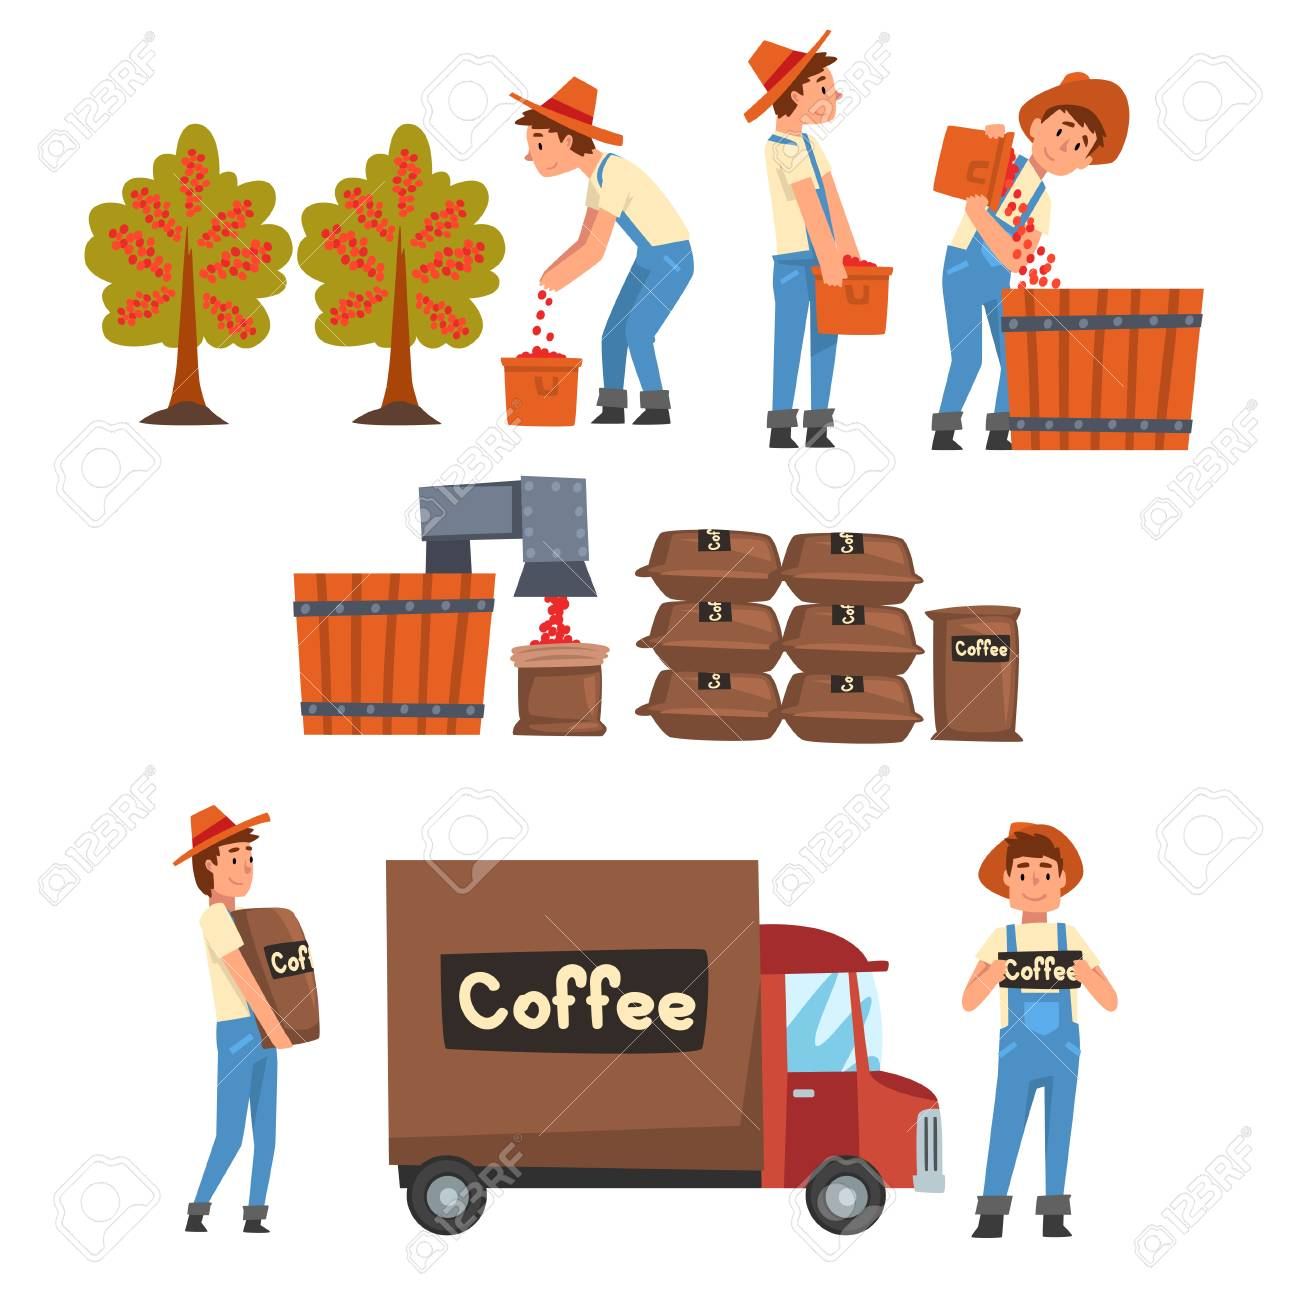 Coffee Industry Production Stages Set, Farmers Gathering, Sorting, Packaging and Transporting Coffee Beans Vector Illustration on White Background. - 122422326